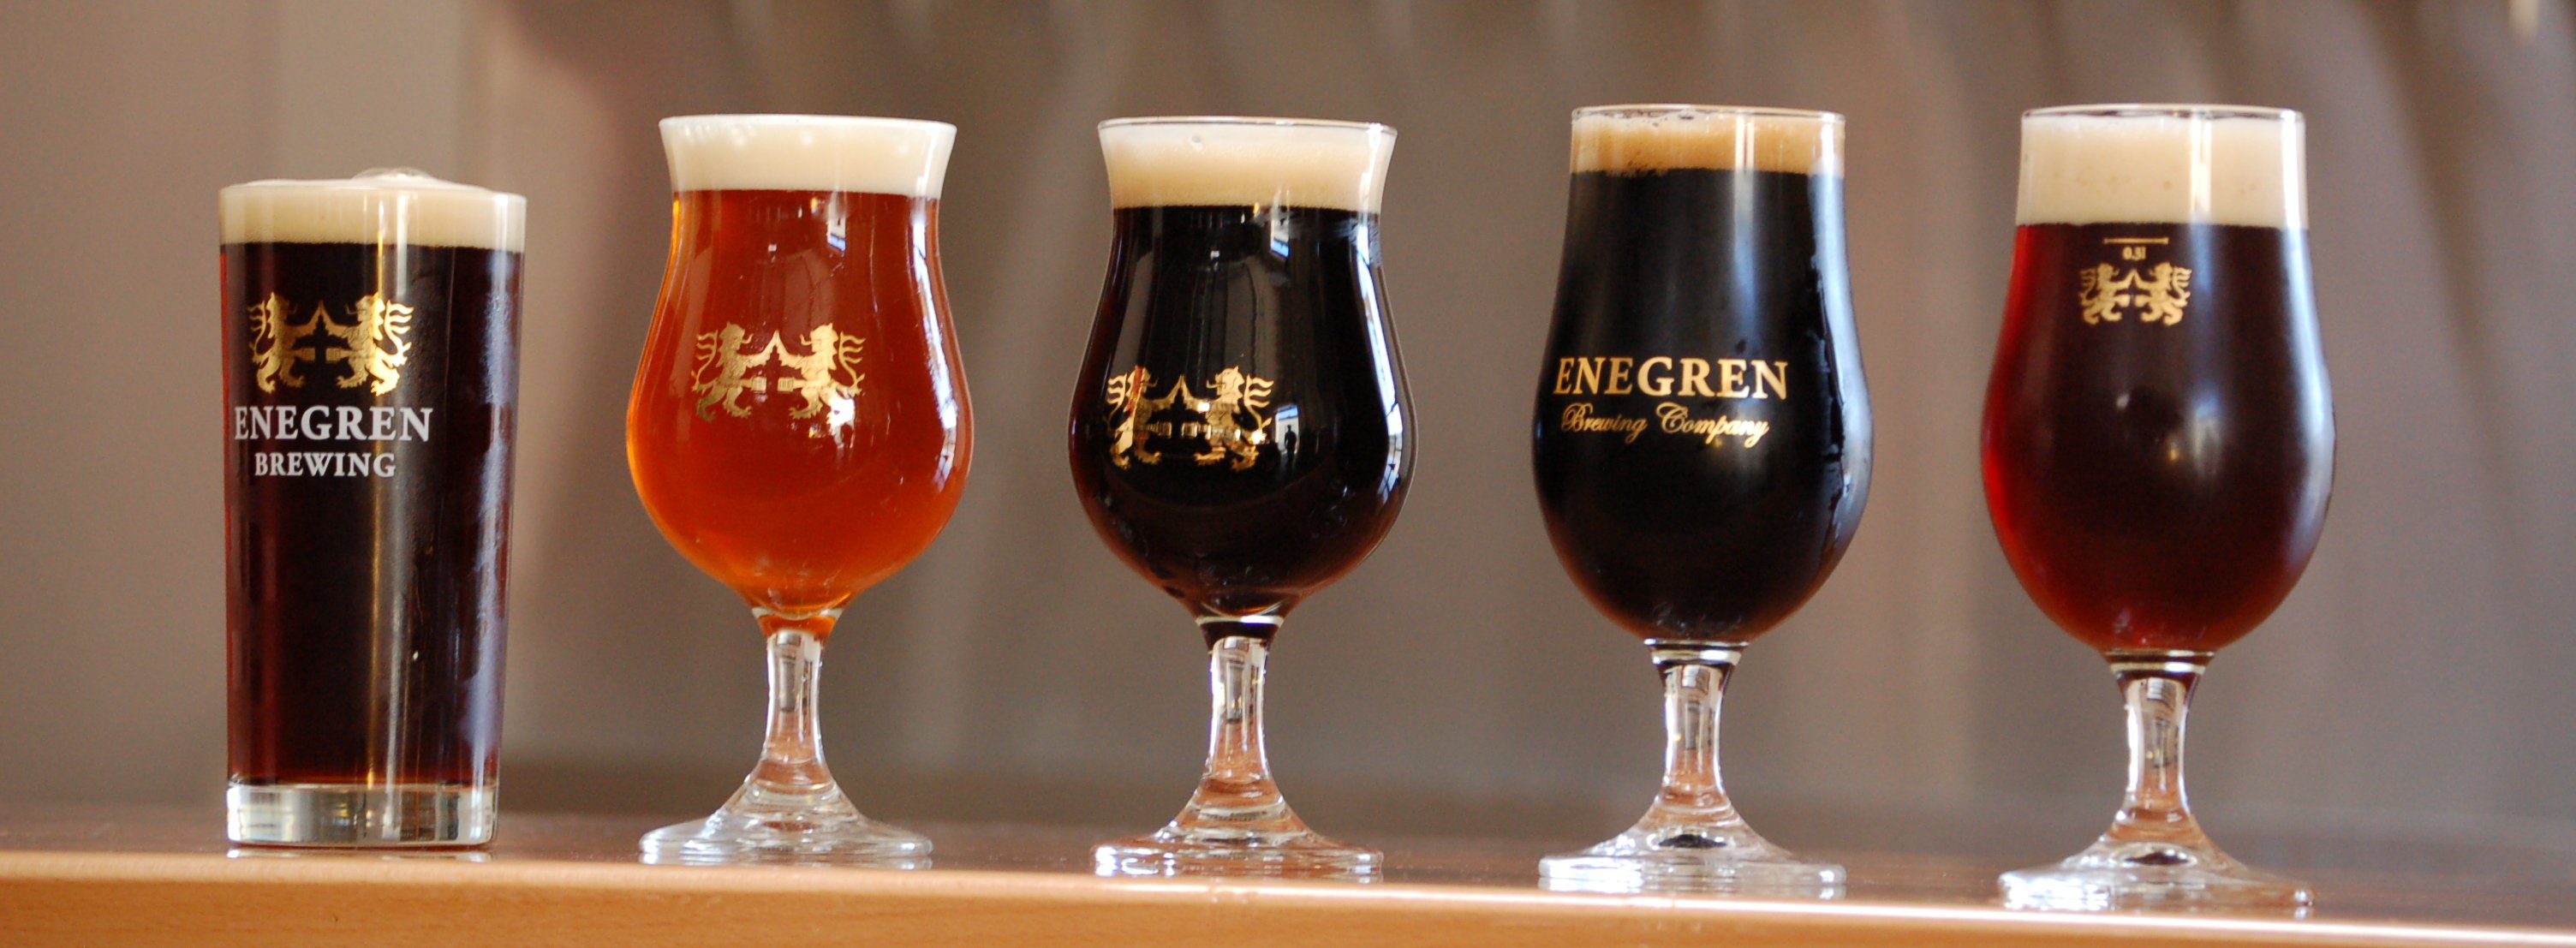 Five Enegren Beers on Bar